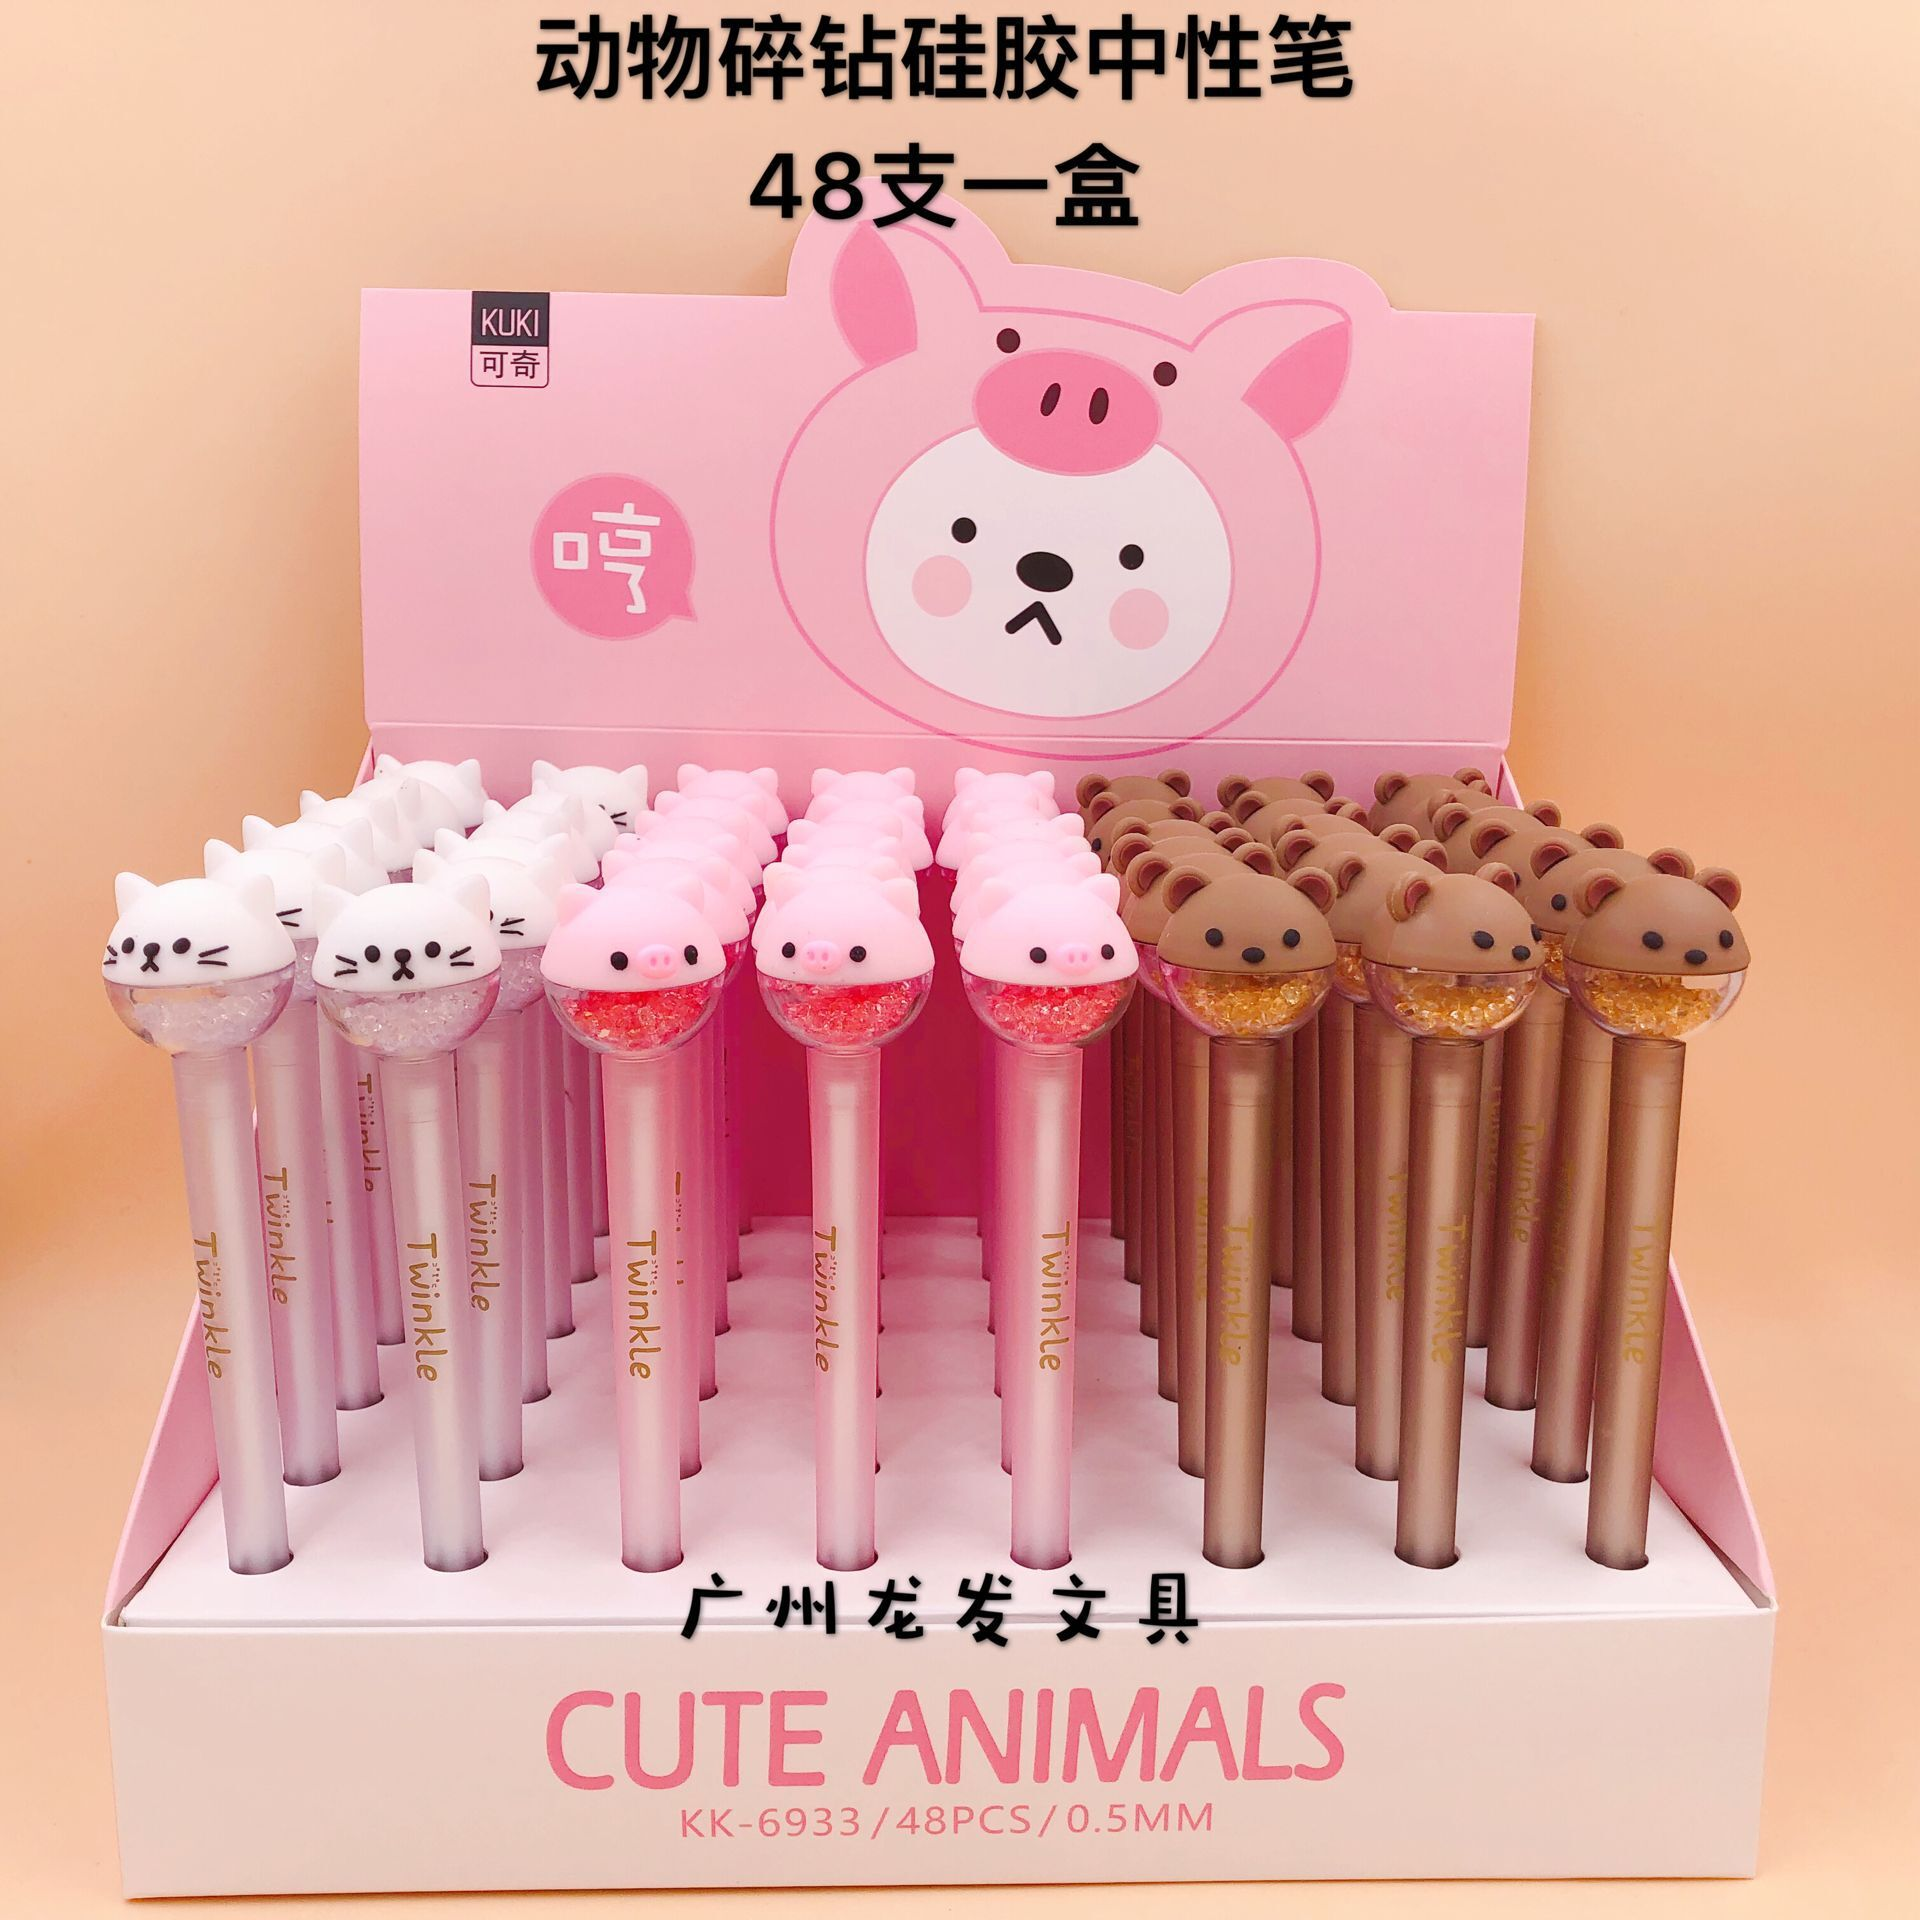 48 pcs Gel Pens Cartoon Animal drill black colored gel inkpens for writing Cute stationery office